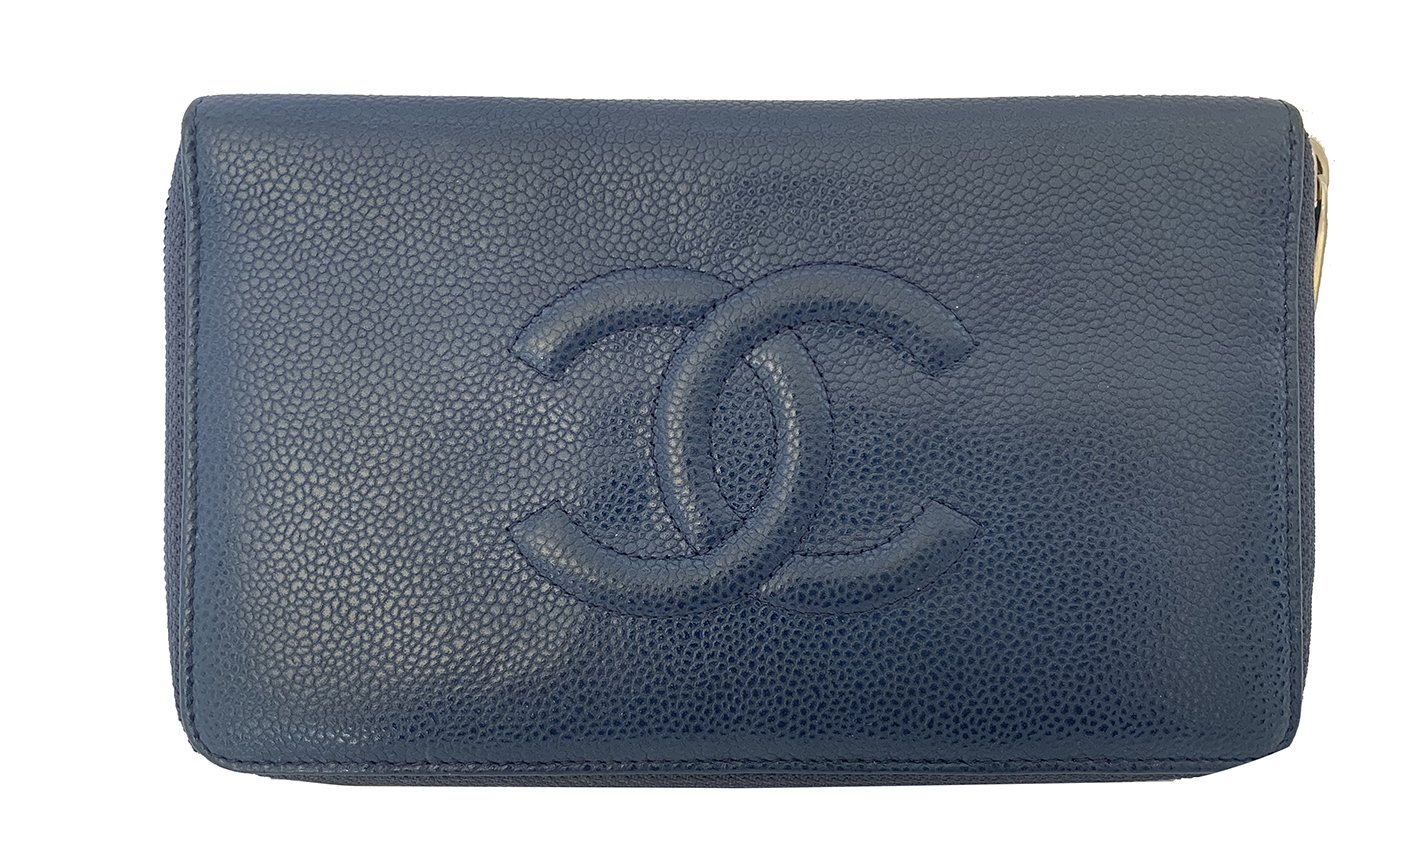 MONEDERO CHANEL AZUL